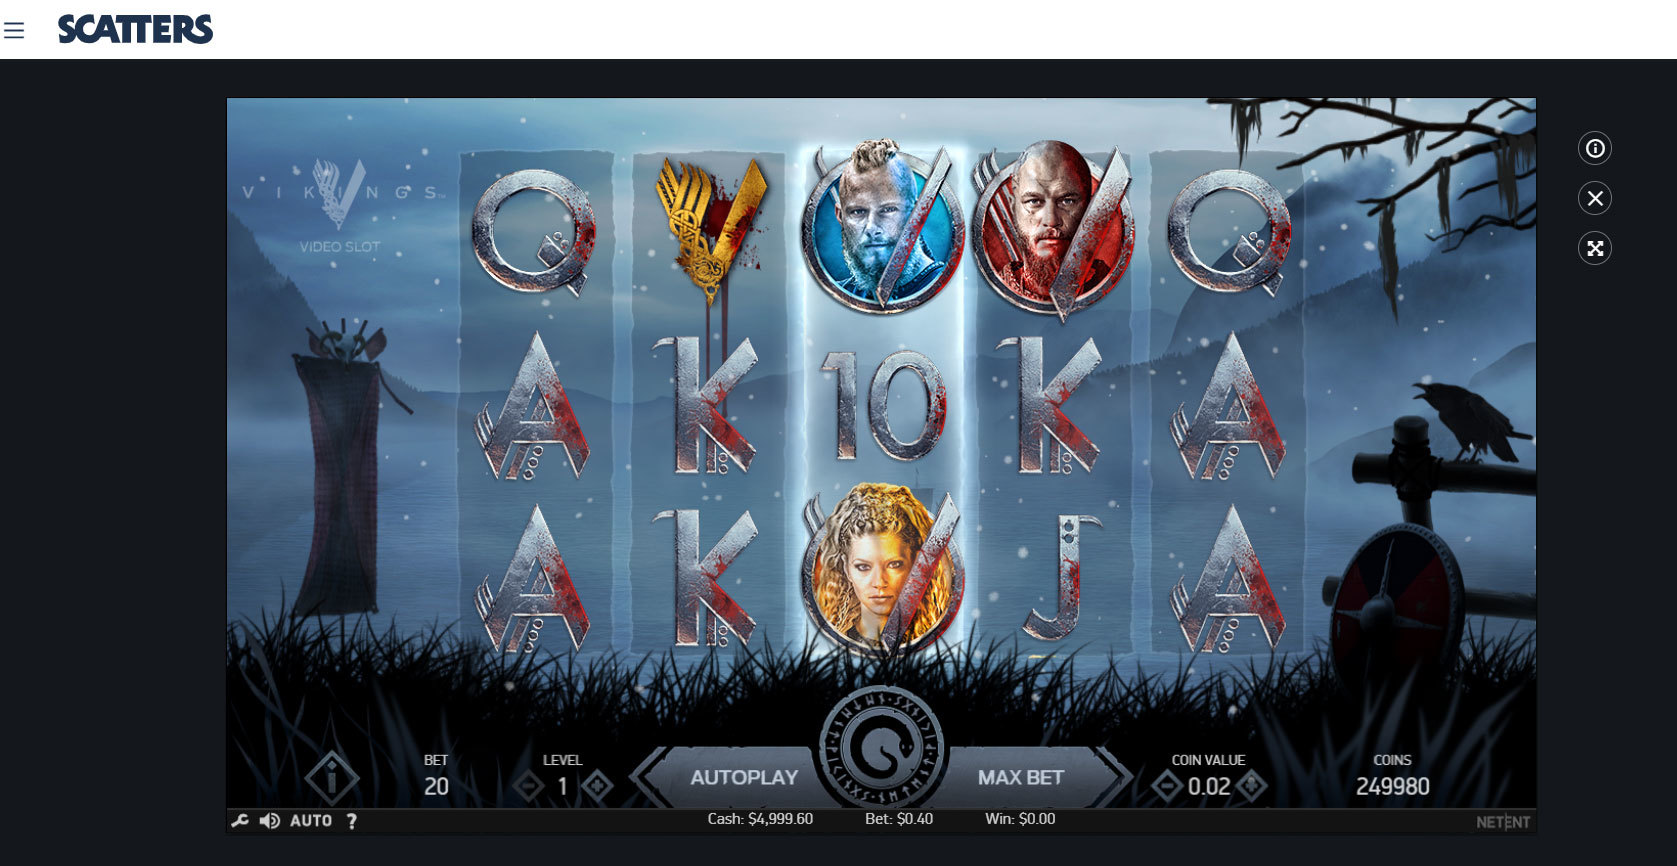 Play Vikings Slot by Netent for Free or Real Money at Scatters Casino